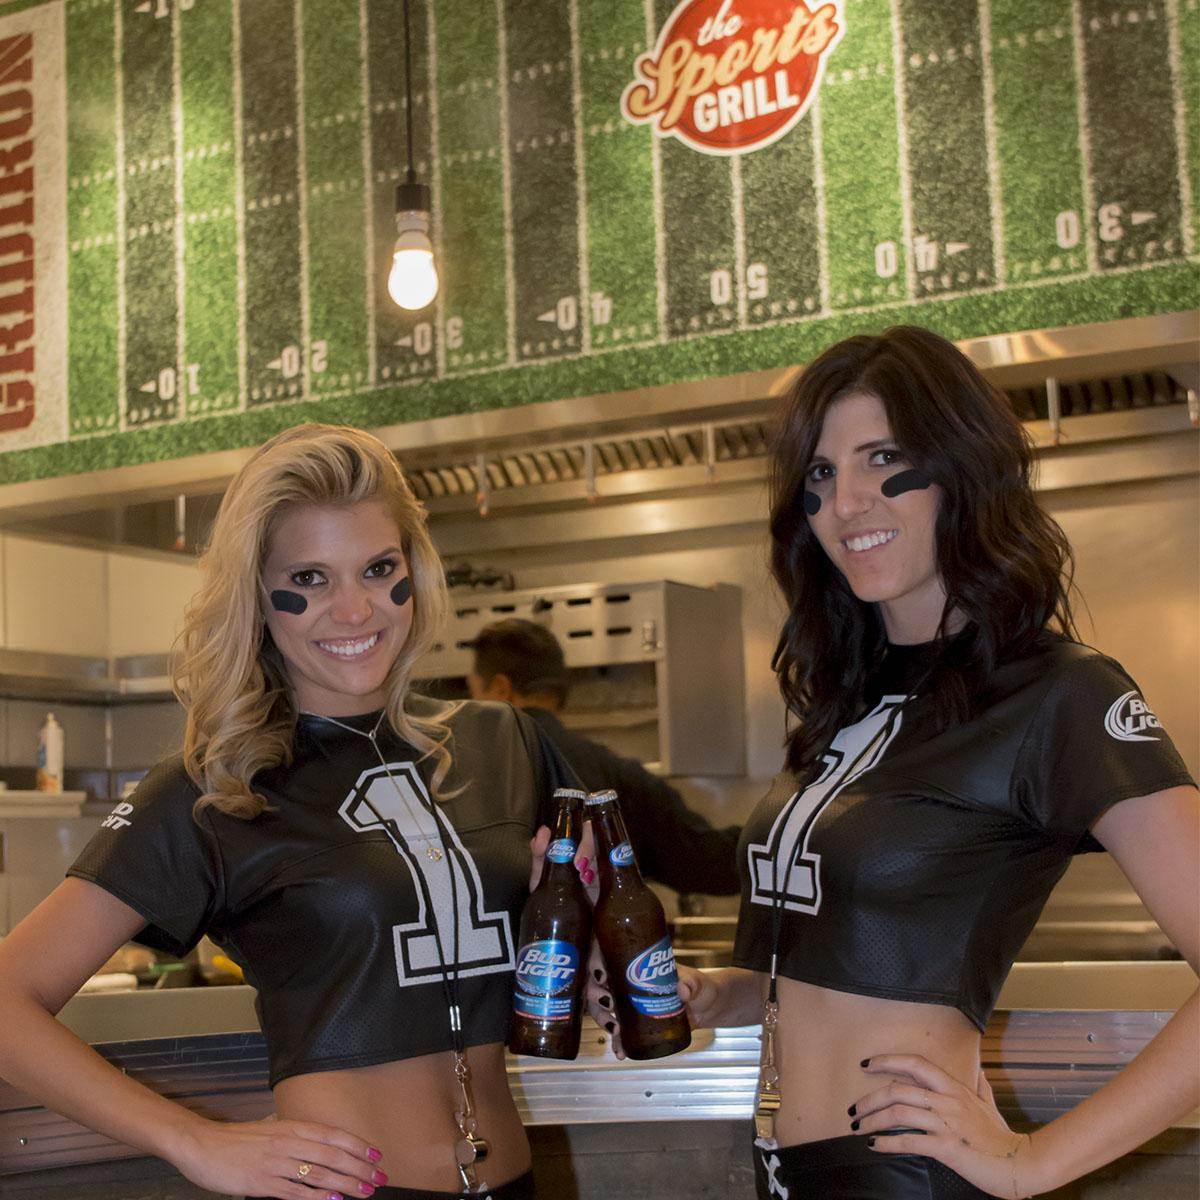 Catch all of today's football action at your favorite Station Casino! Wash it all down with $2.50 Bud & Bud Lights! http://t.co/bjcxO0tsPF